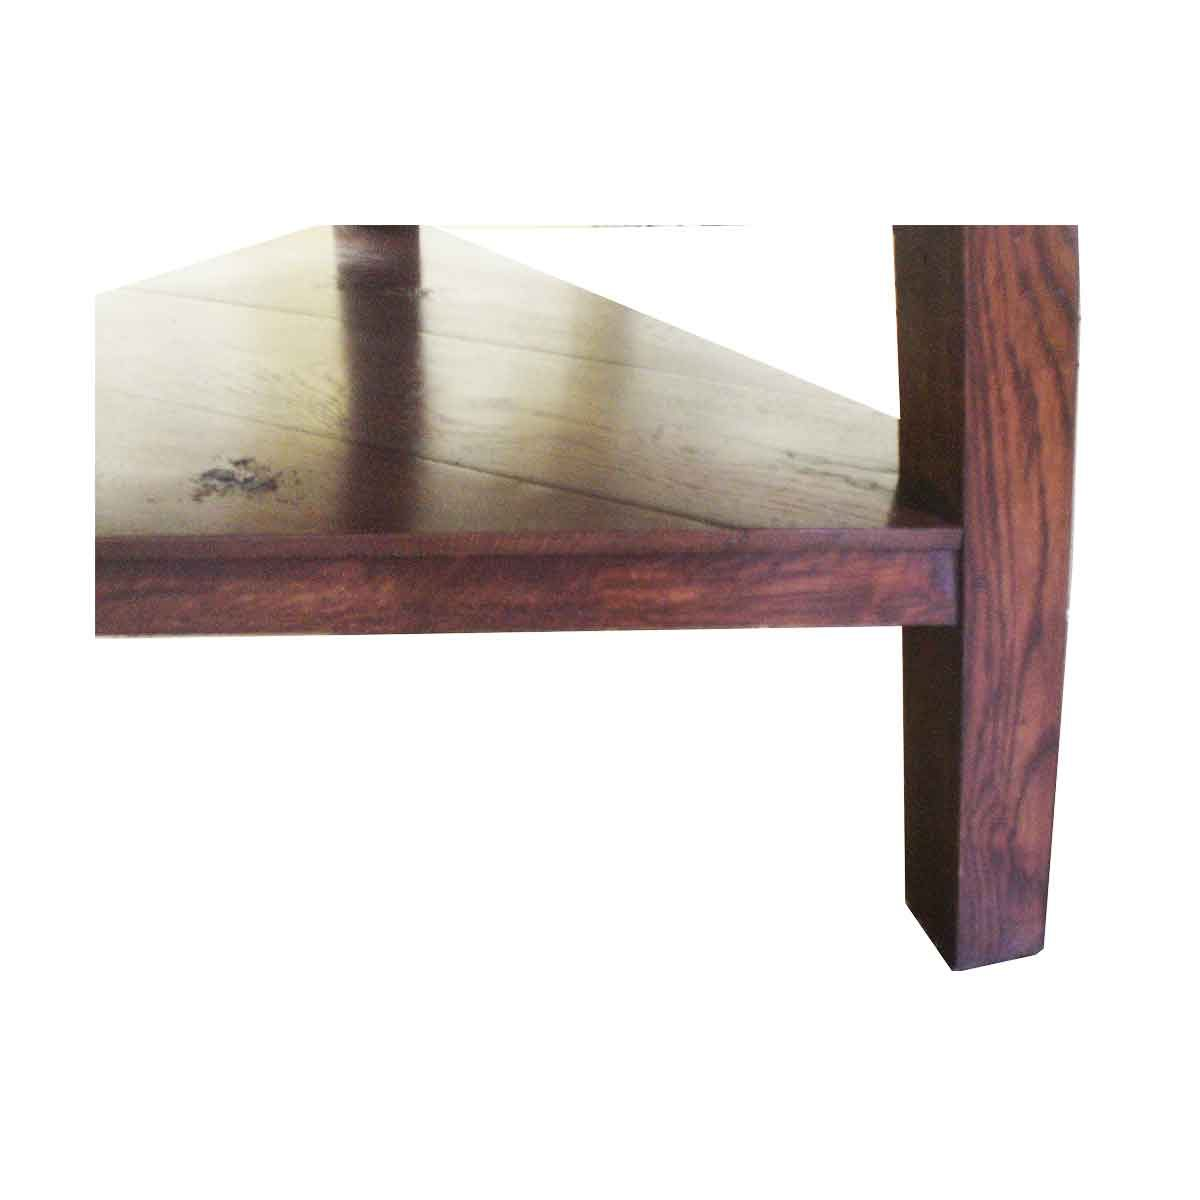 Bespoke Cricket Dining Table Handcrafted in Suffolk